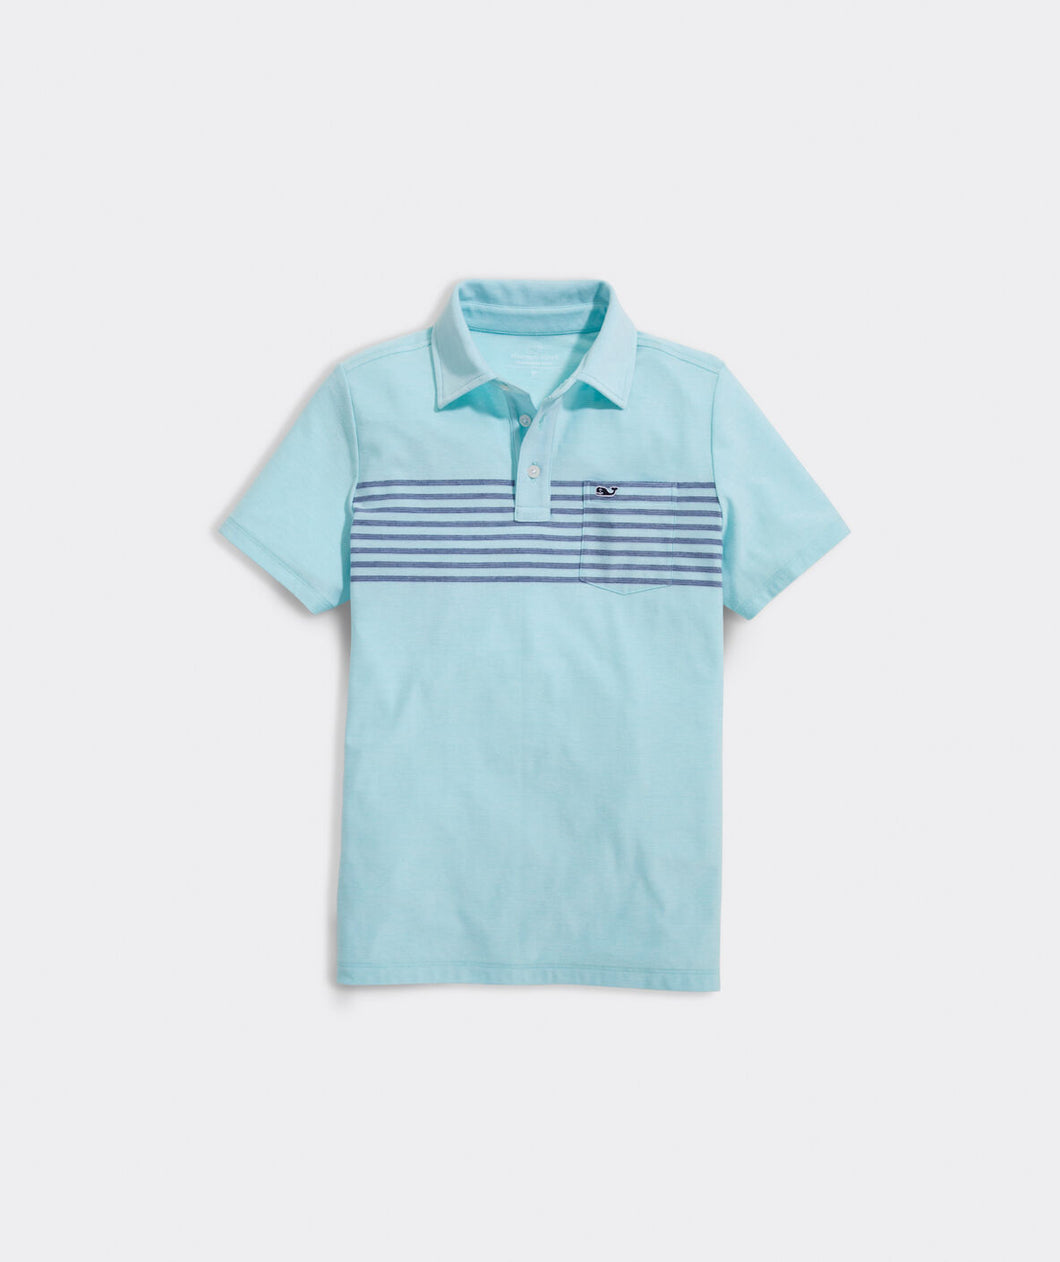 VV Boys' Edgartown Polo